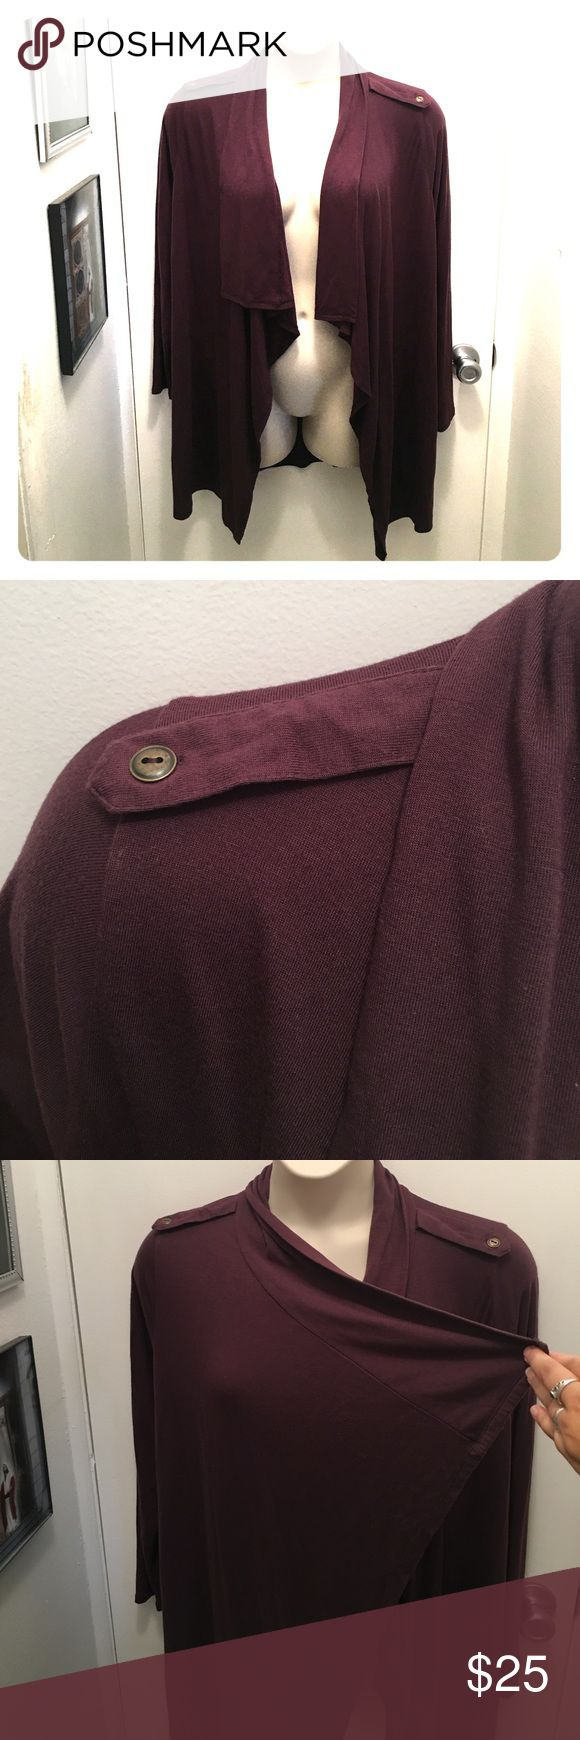 Liz Claiborne Waterfall Cardigan Excellent condition. Very minor pilling, no flaws. Dark plum or prune color. Fits size 18 very well.  Soft knit, very classy! Liz Claiborne Sweaters Cardigans